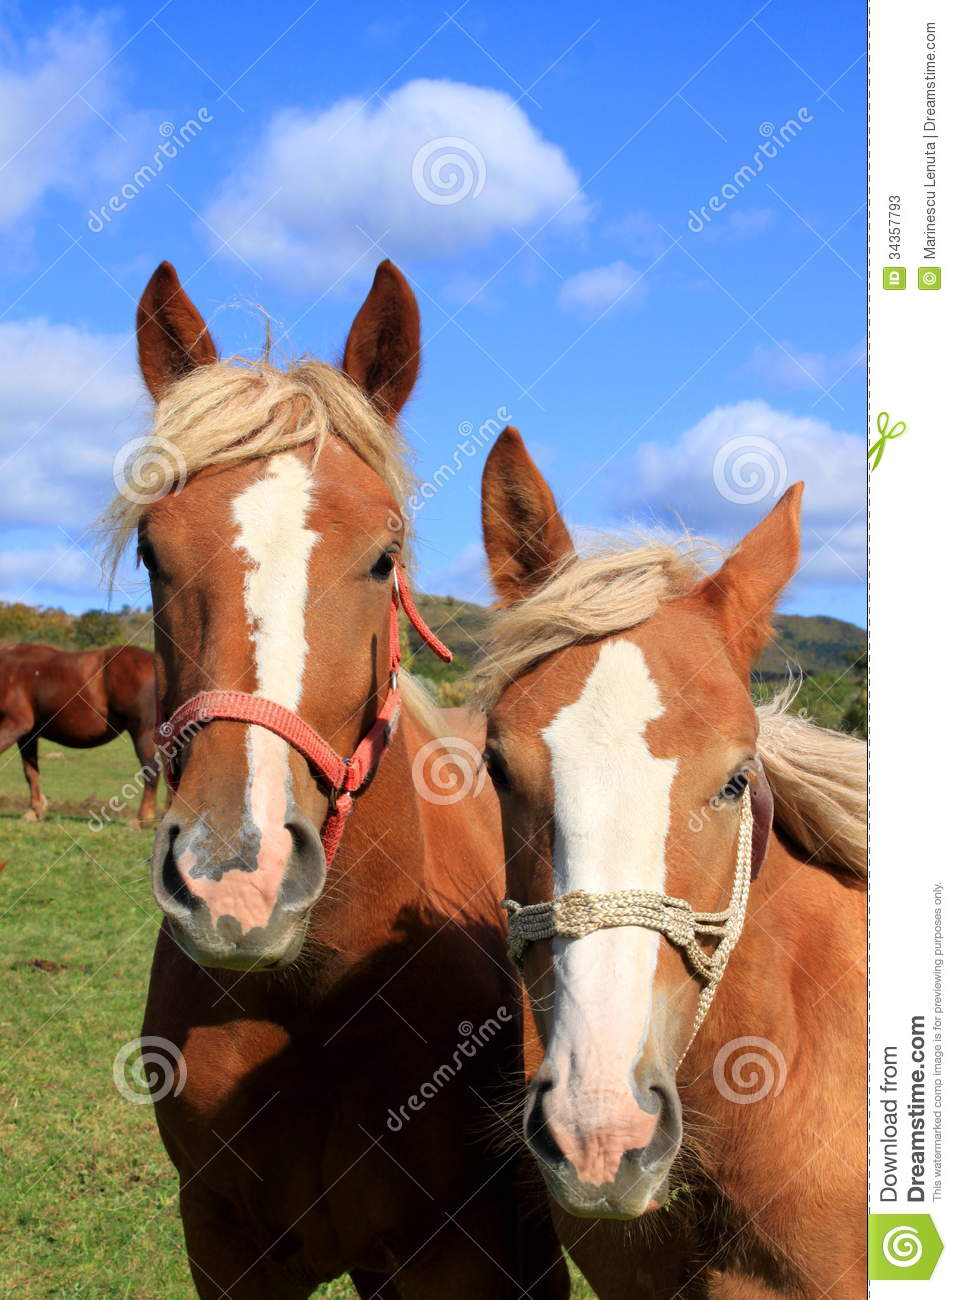 Horse Heads Stock Photos - Image: 34357793